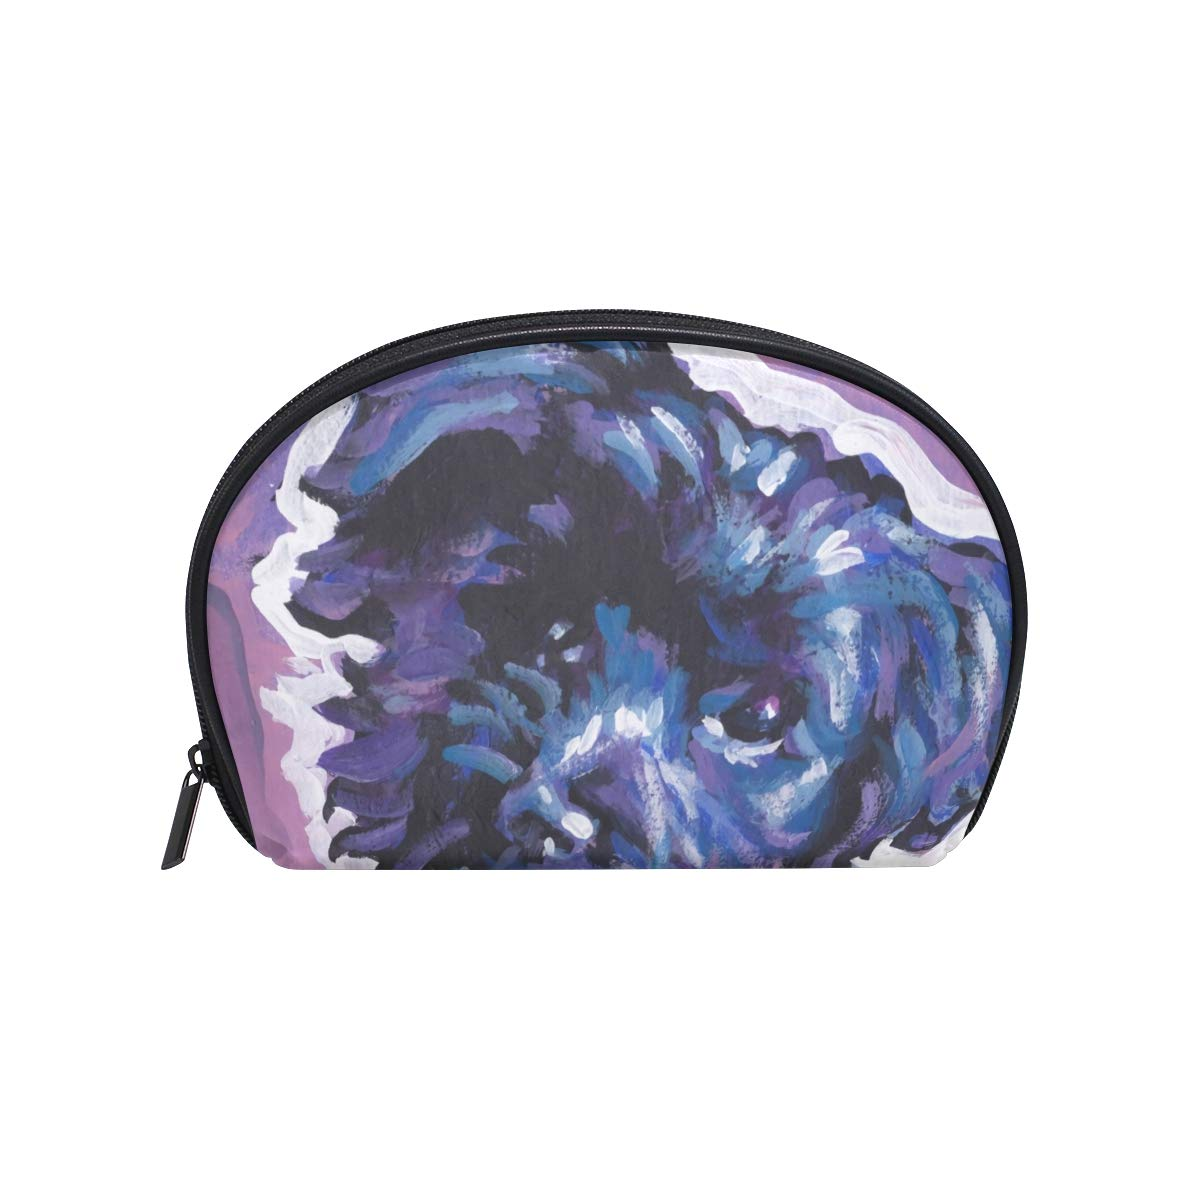 912cce592f5b Amazon.com : Half Moon Cosmetic Beauty Bag Havanese Dog Travel Handy ...